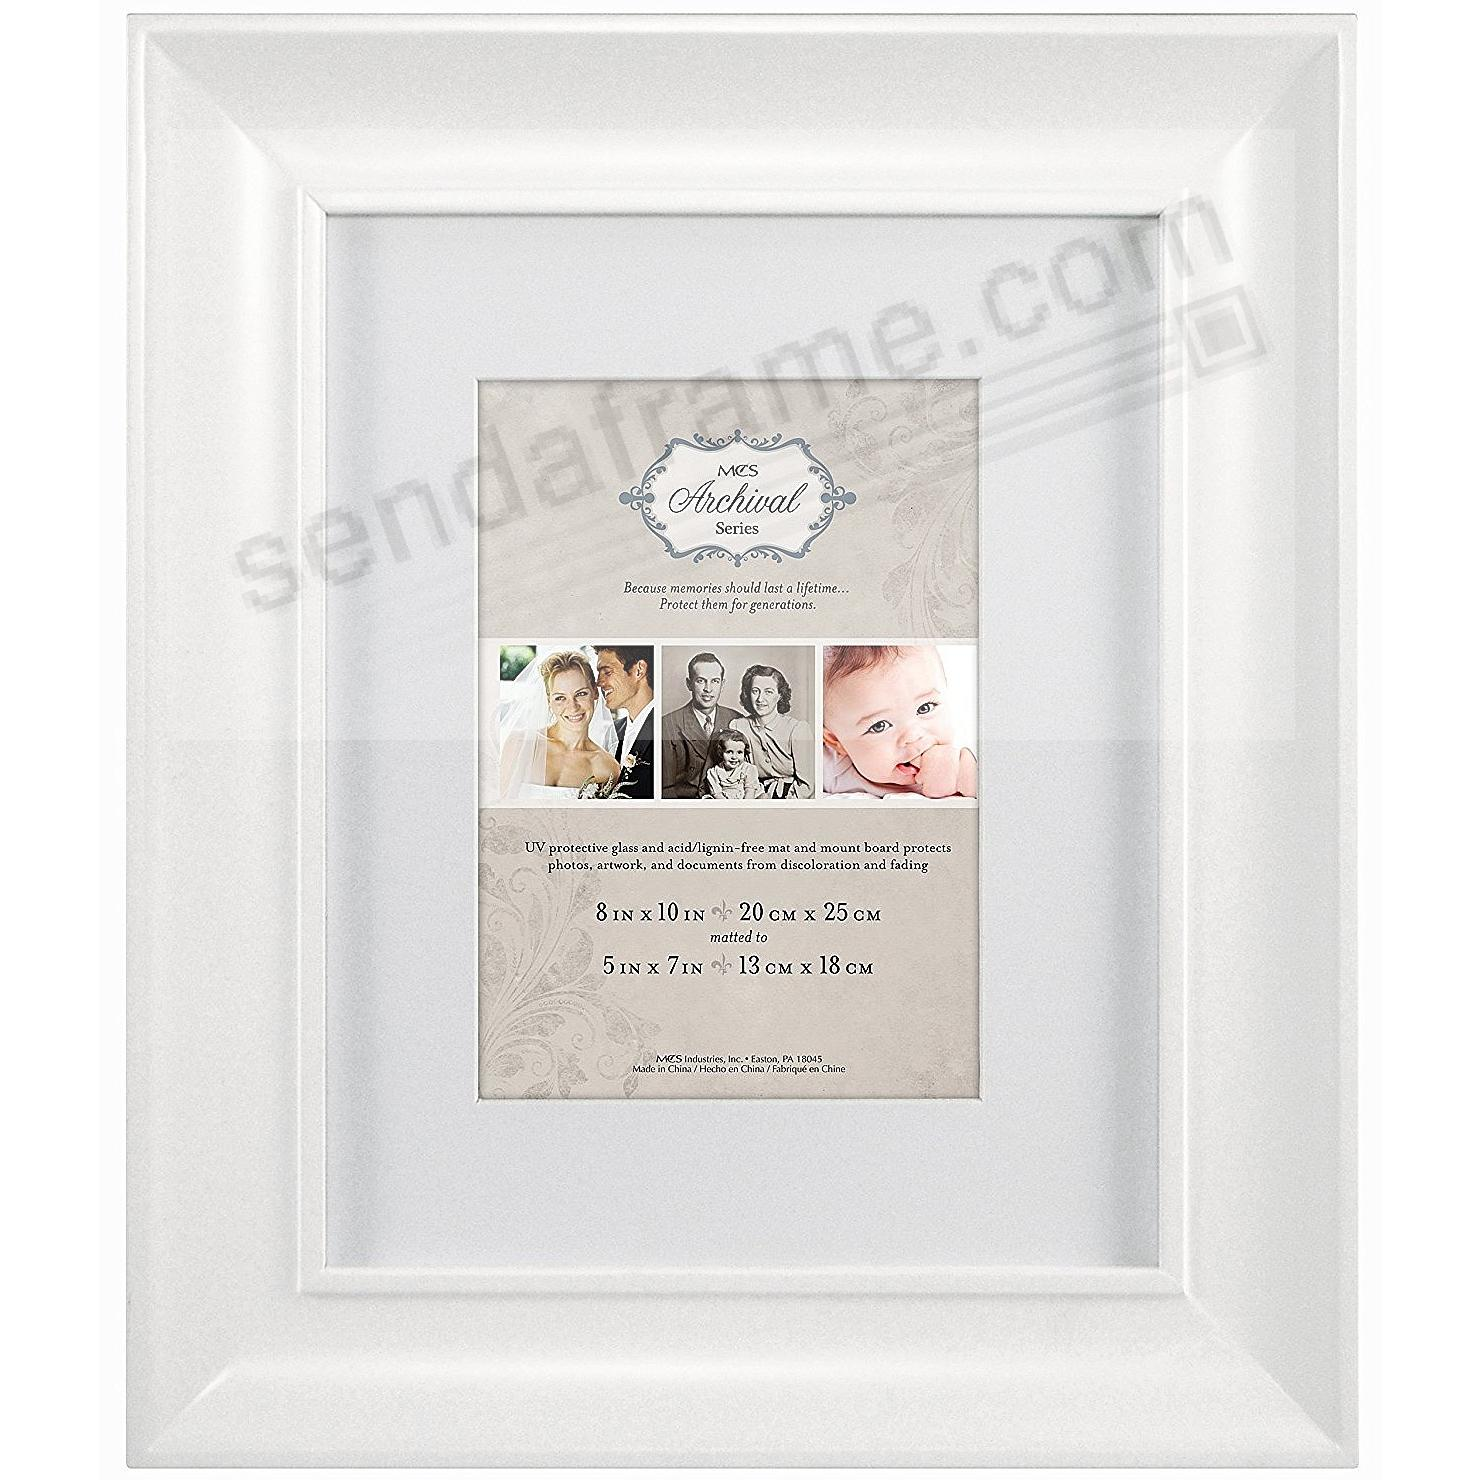 White archival matted wood frame 8x105x7 by mcs picture frames white archival matted wood frame 8x105x7 by mcs jeuxipadfo Choice Image